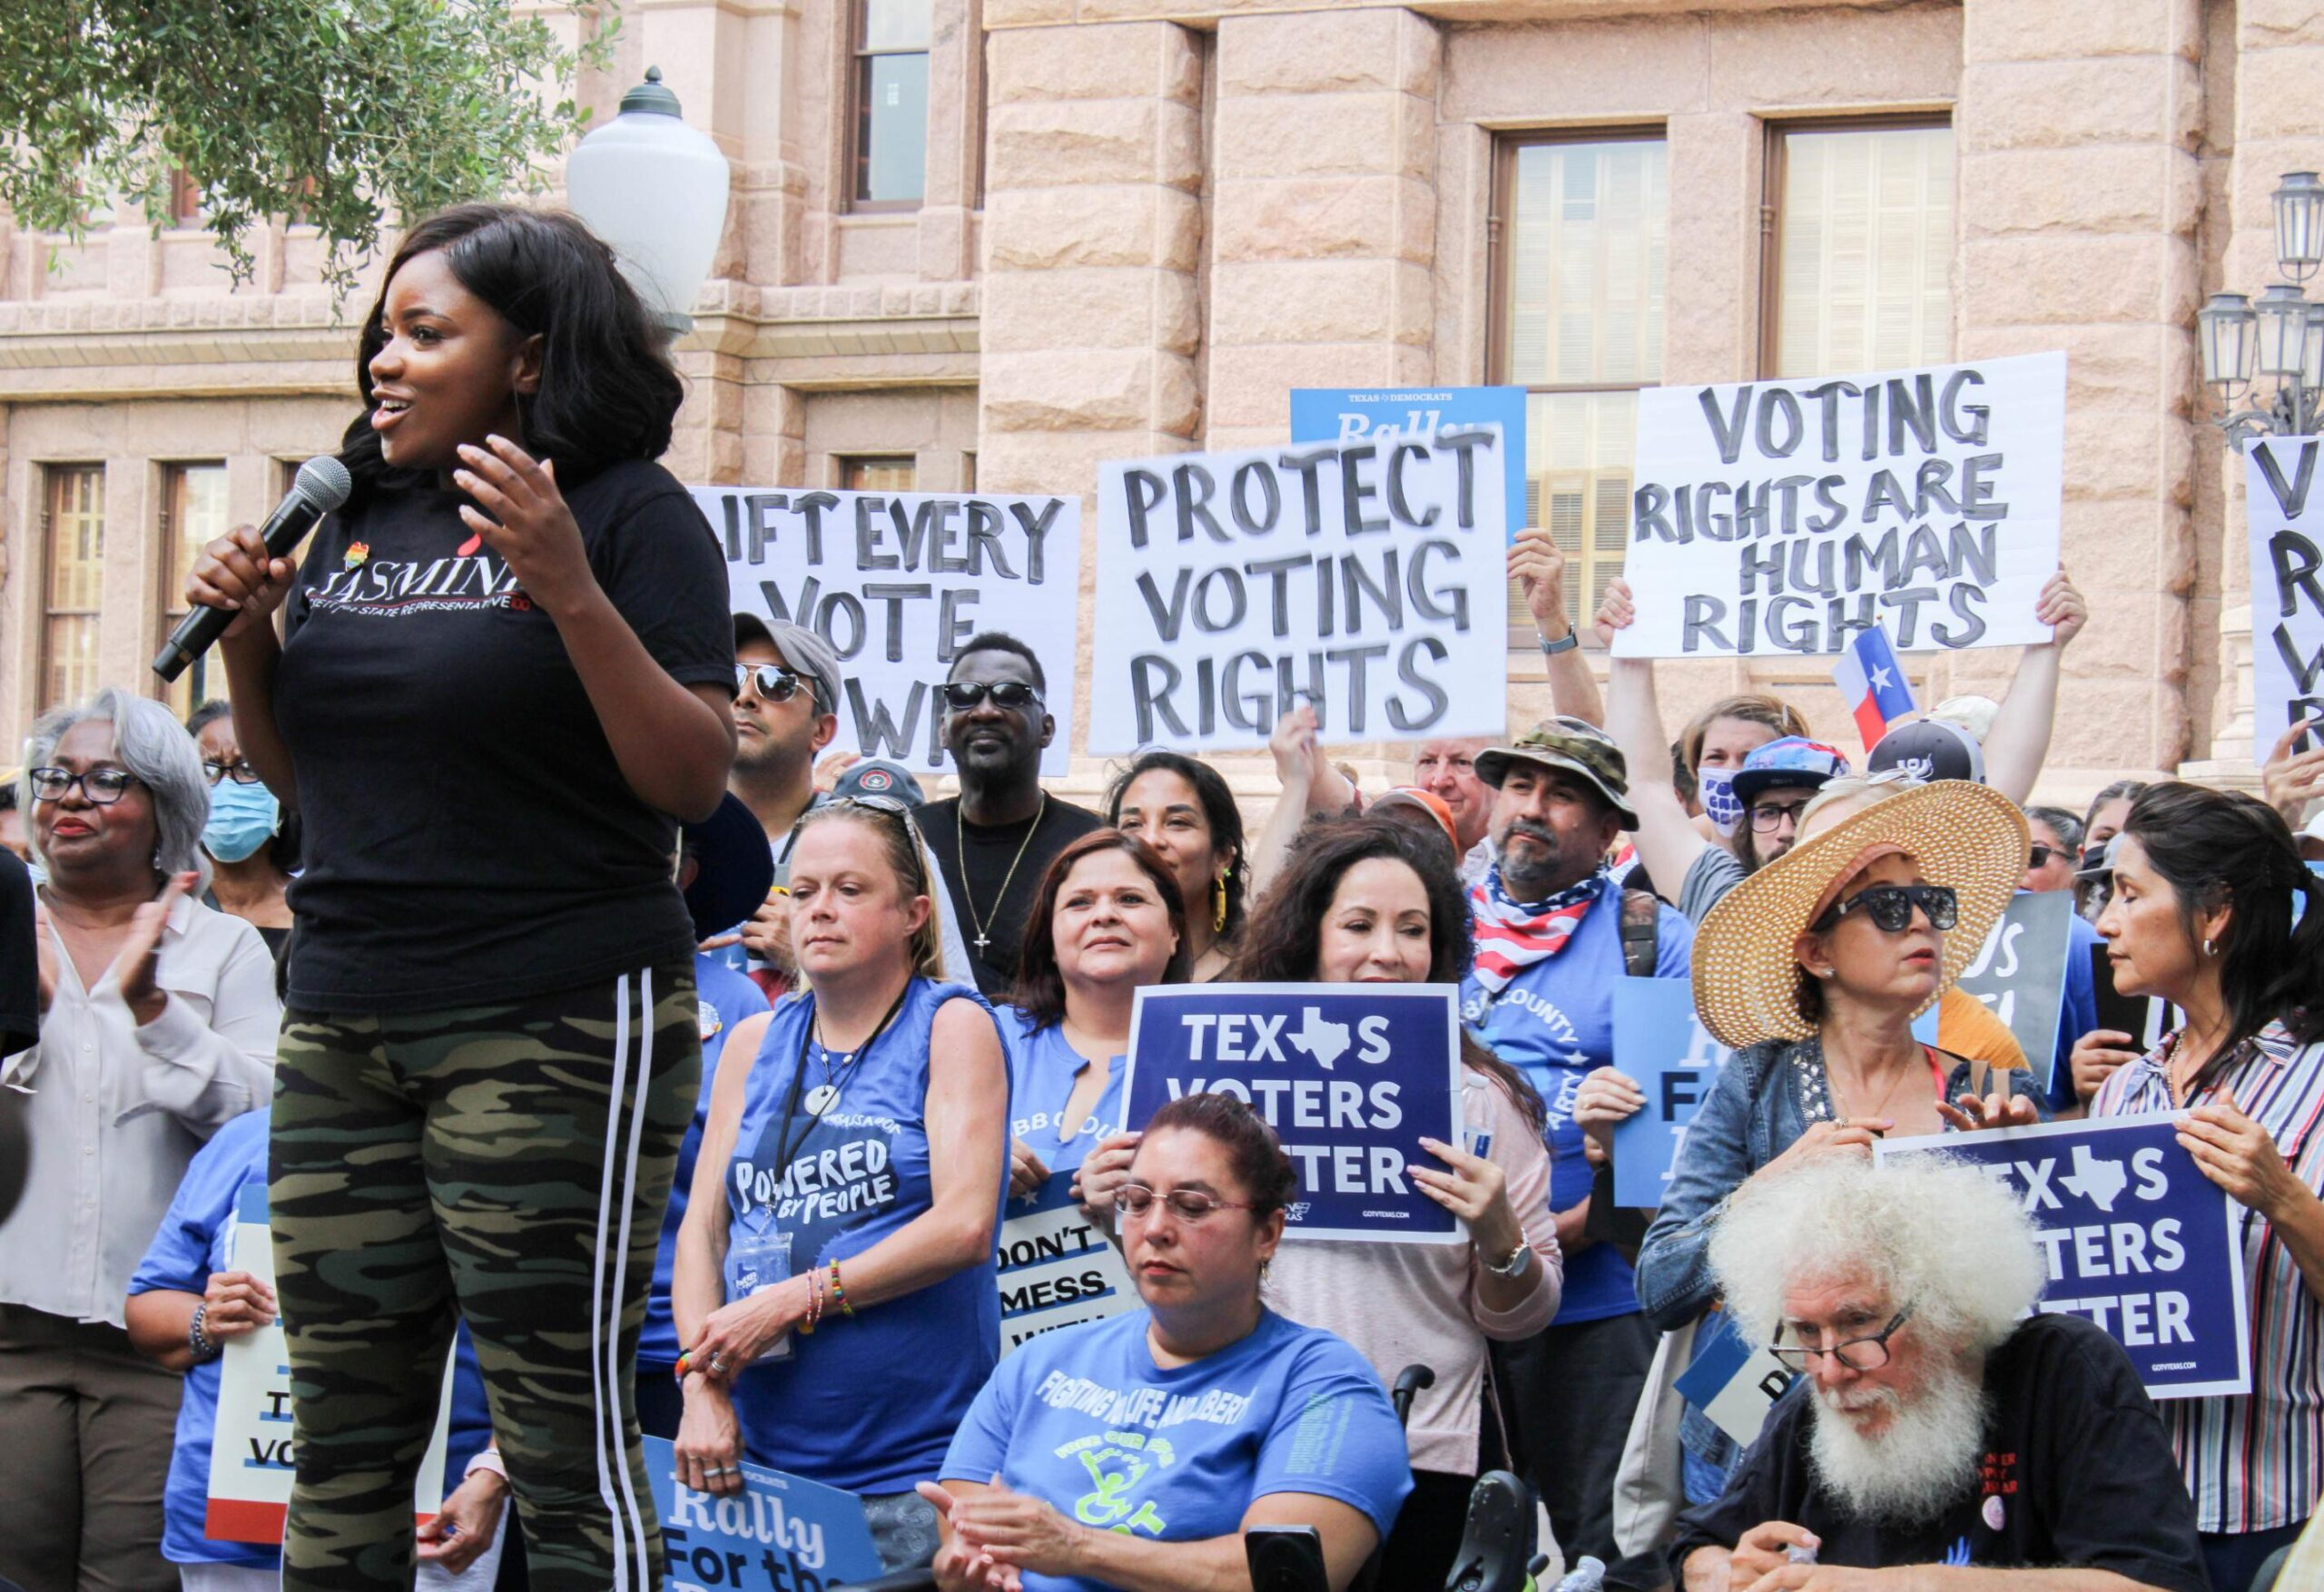 <i>Carlos Kosienski/Sipa</i><br/>Rep. Jasmine Crockett addresses the crowd at the For The People Rally in front of the Texas Capitol building in Austin